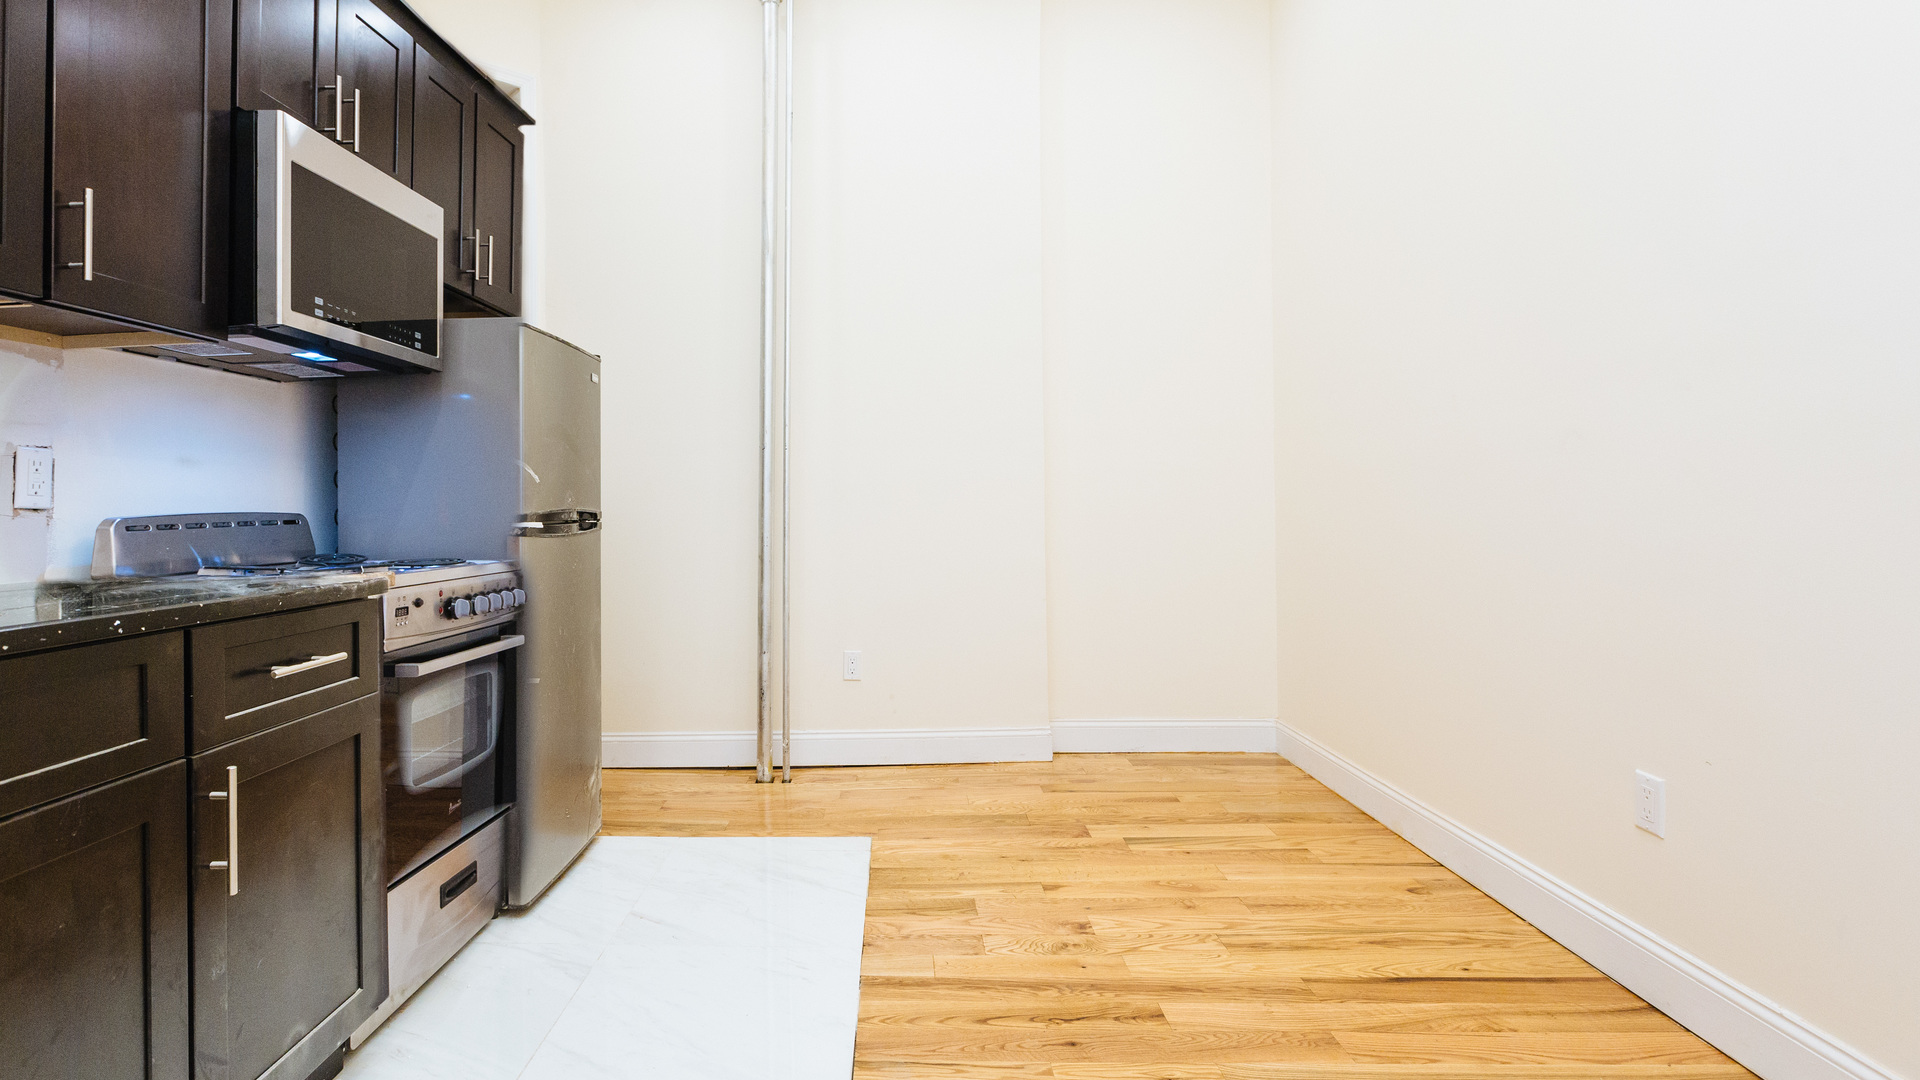 A $1,900 apartment in Crown Heights, Brooklyn - Nooklyn